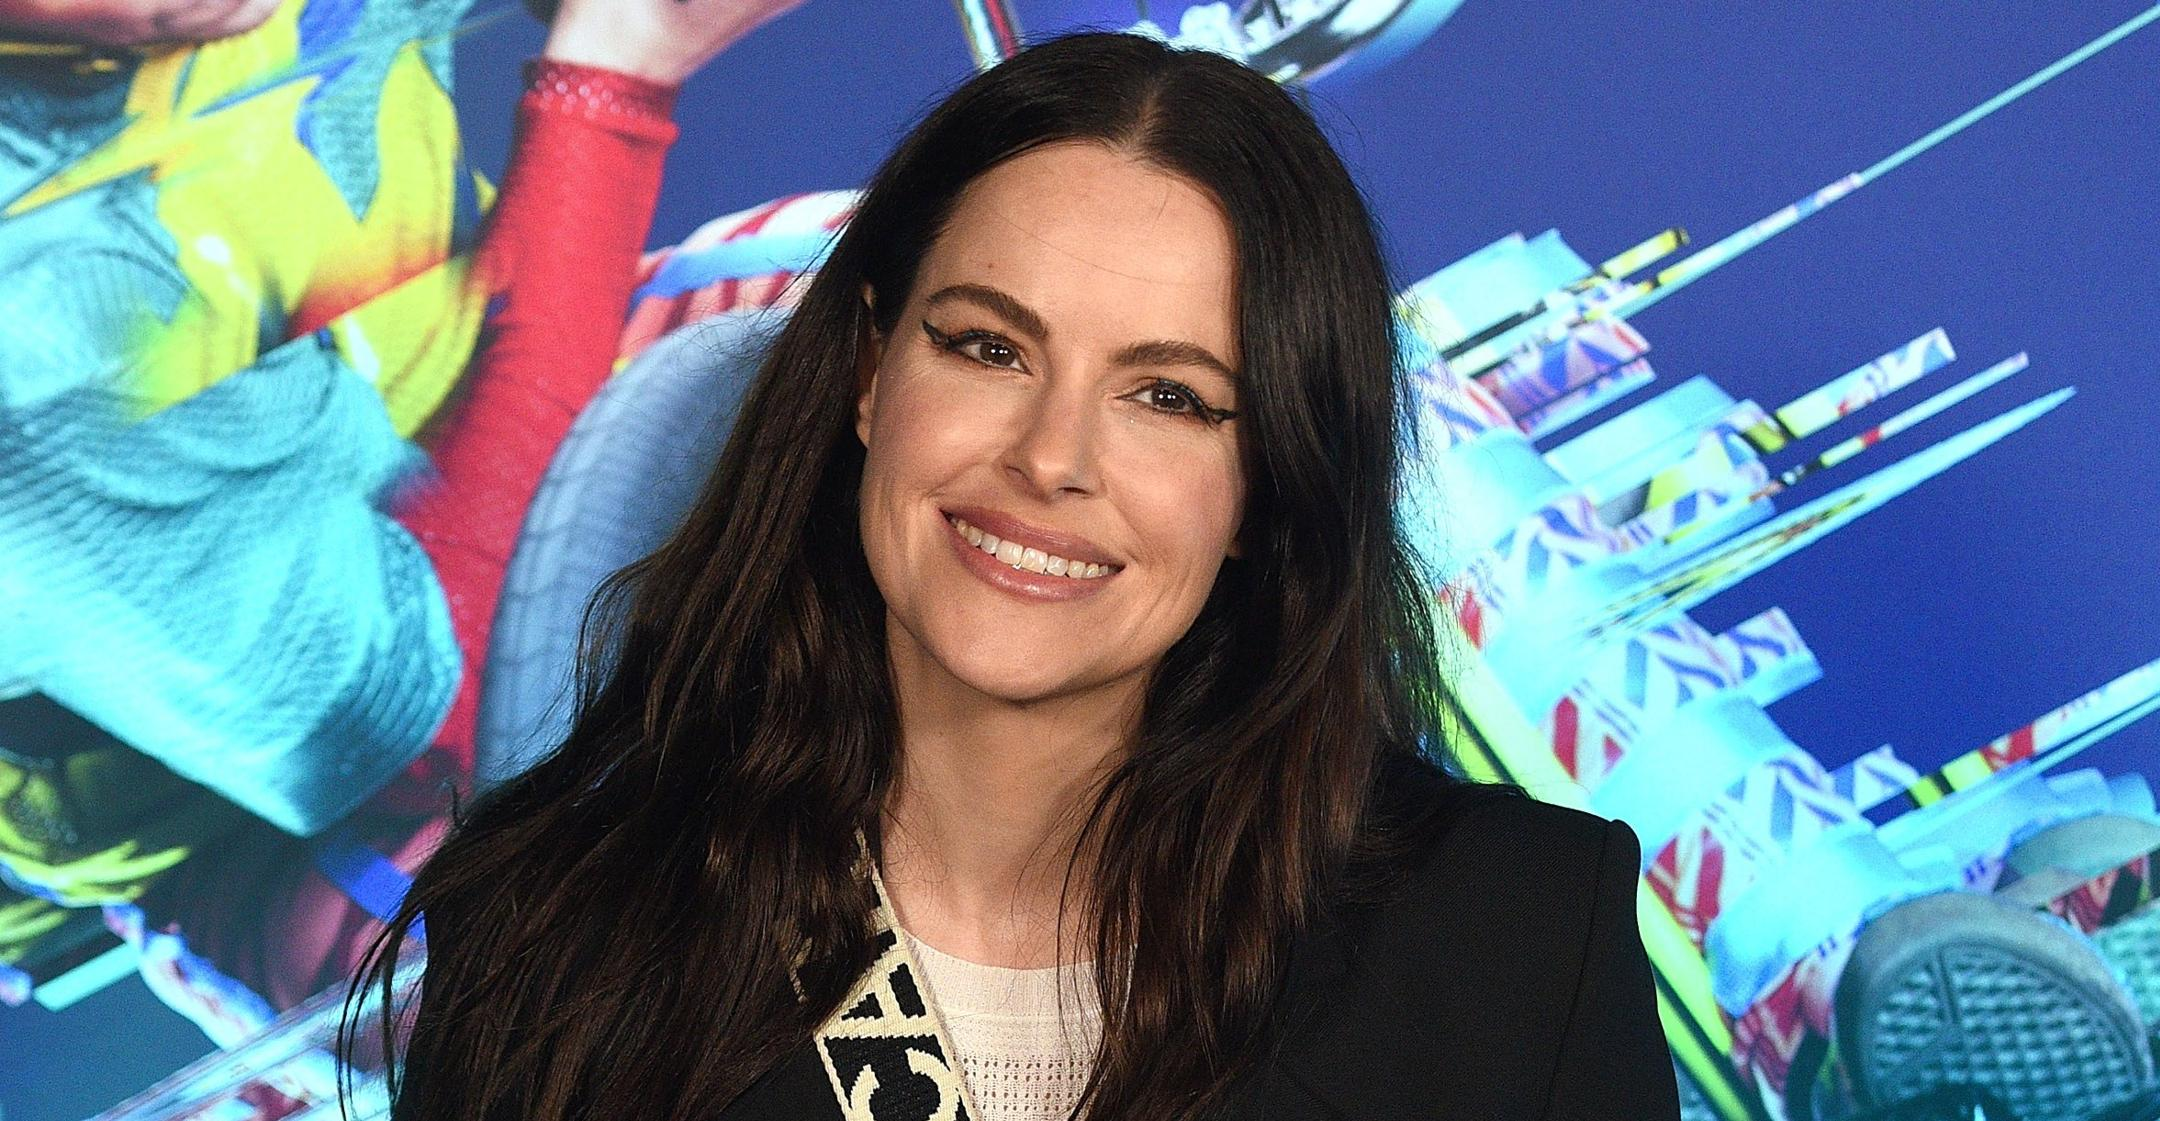 schitts creek star emily hampshire therapy helped form amazing relationship with myself